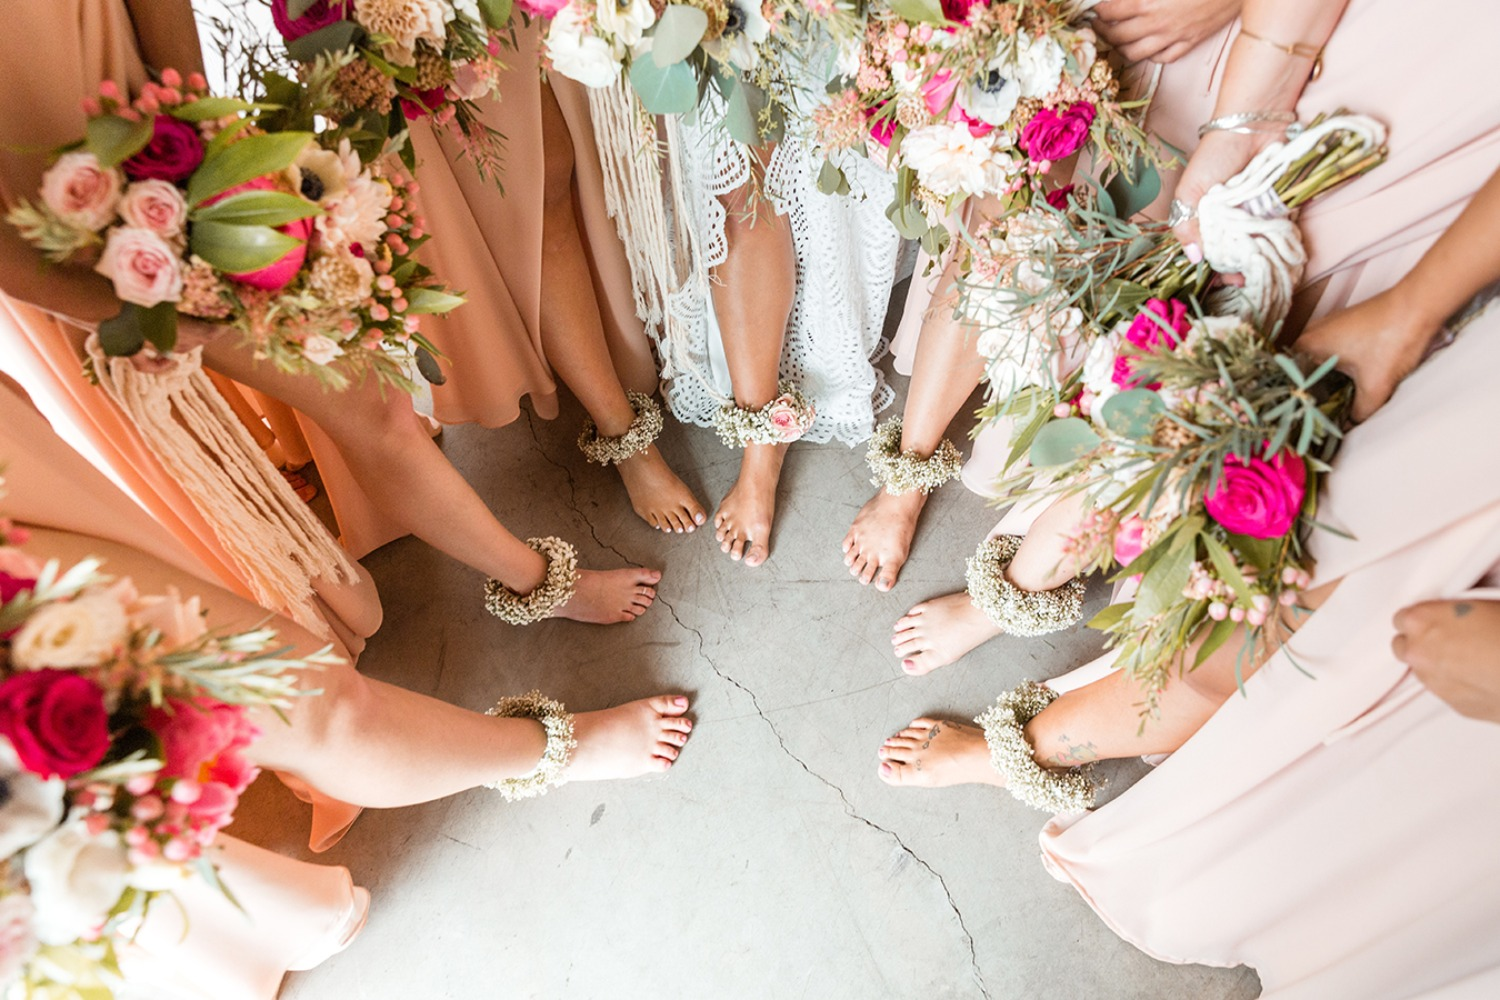 Floral anklets for the bride and bridesmaids